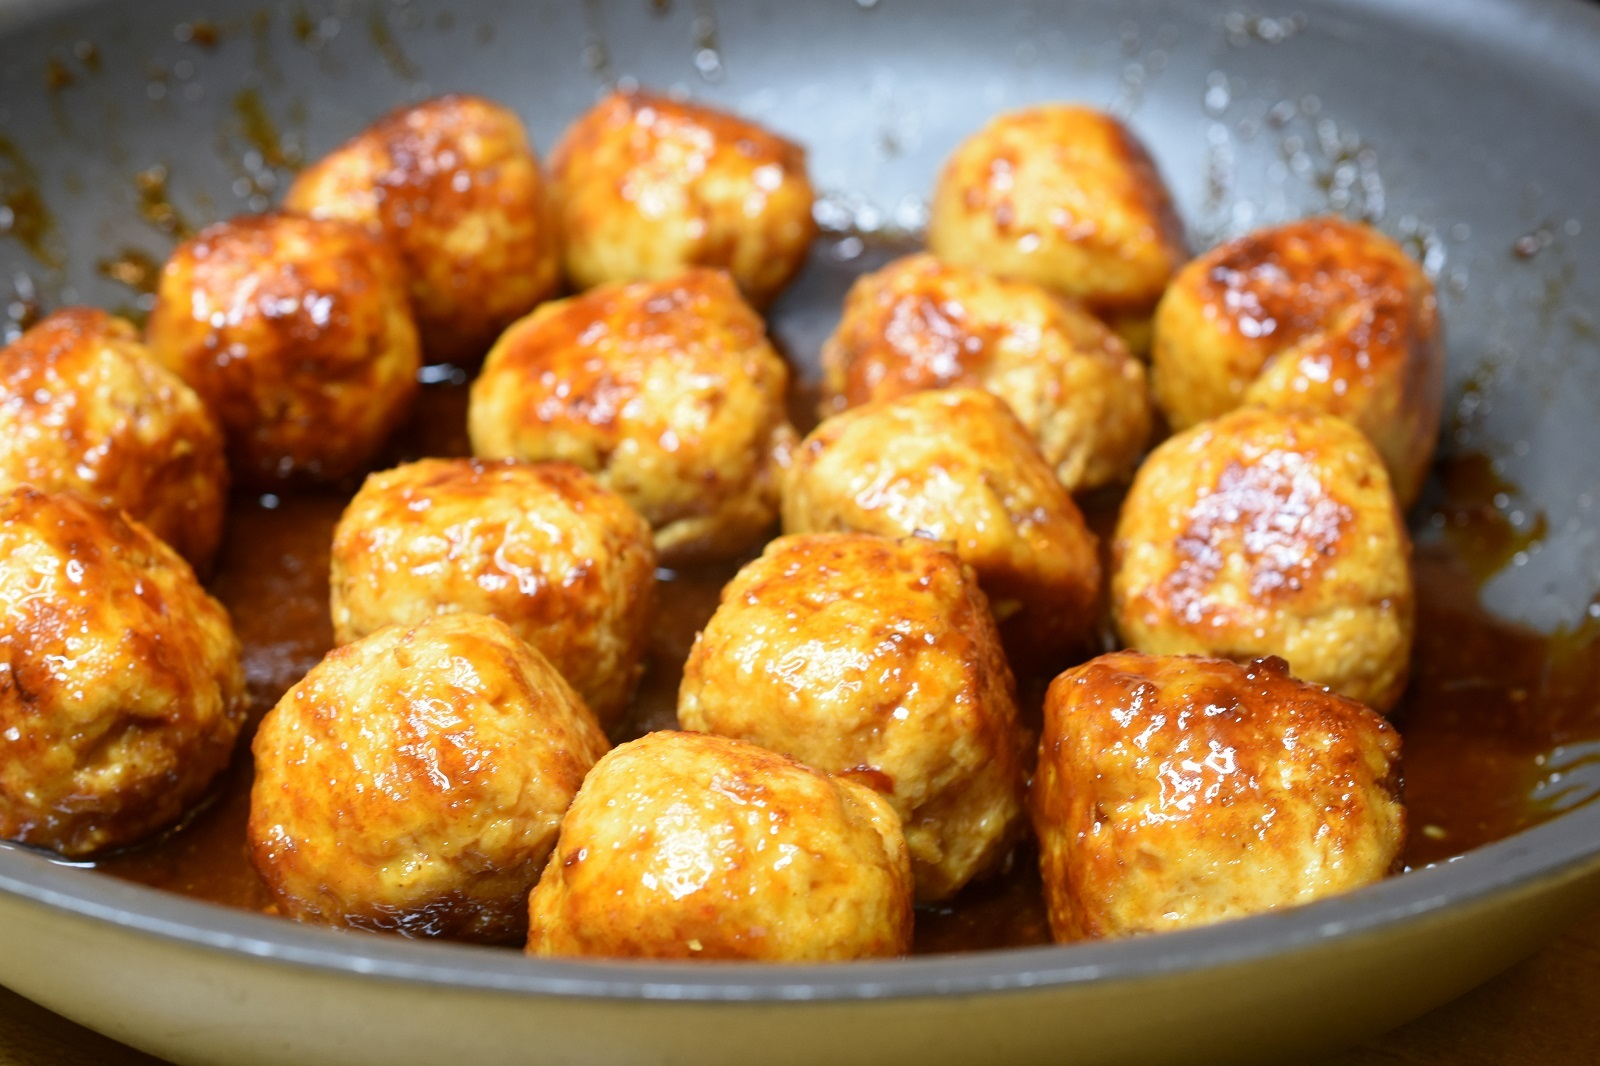 Meatballs with General Tso's Sauce